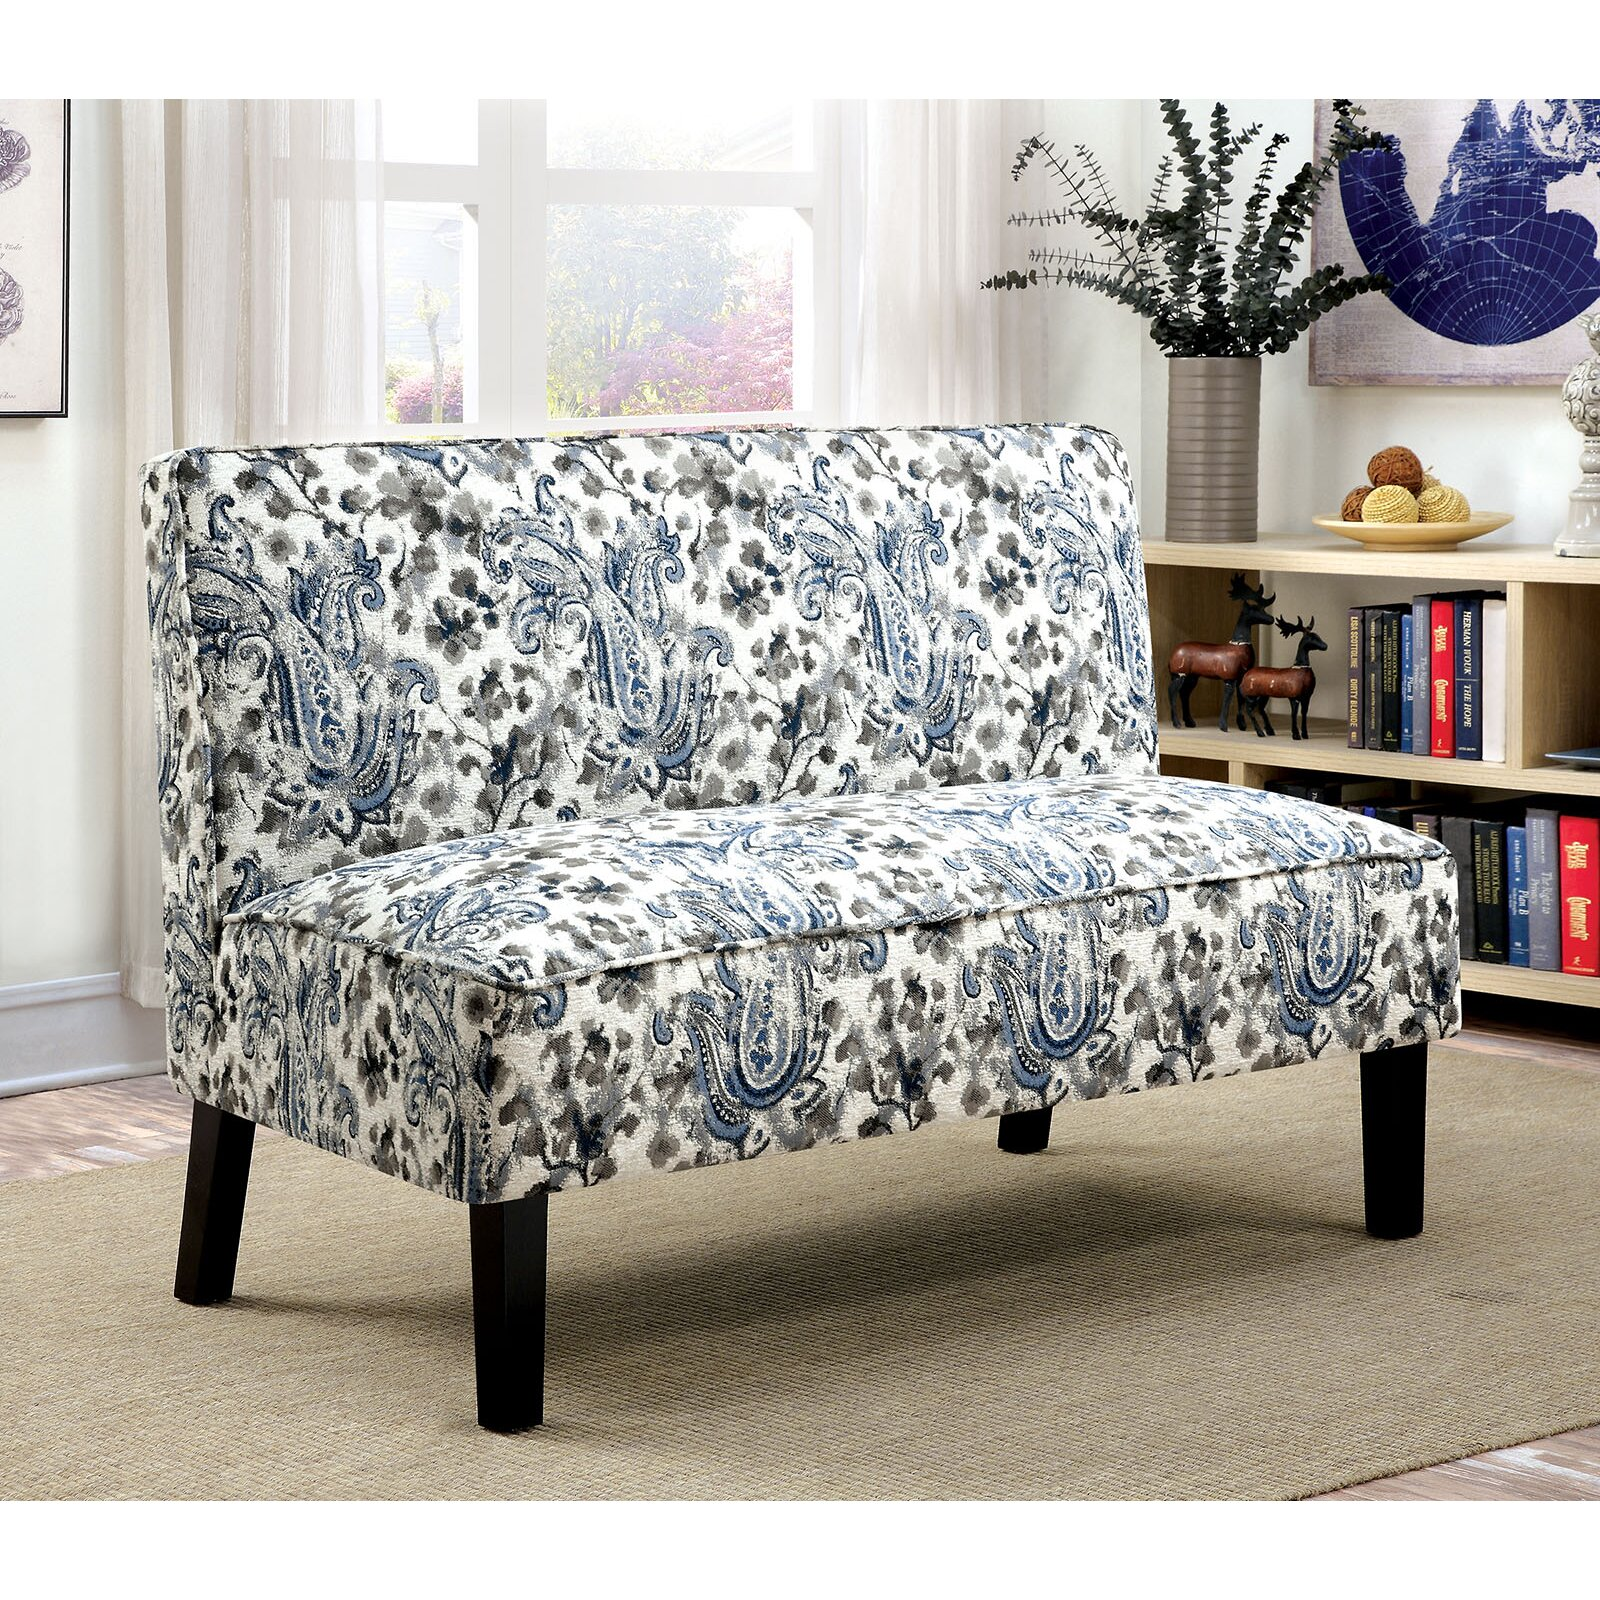 Foyer Accent Chair : Entryway accent chair modern bench vanity